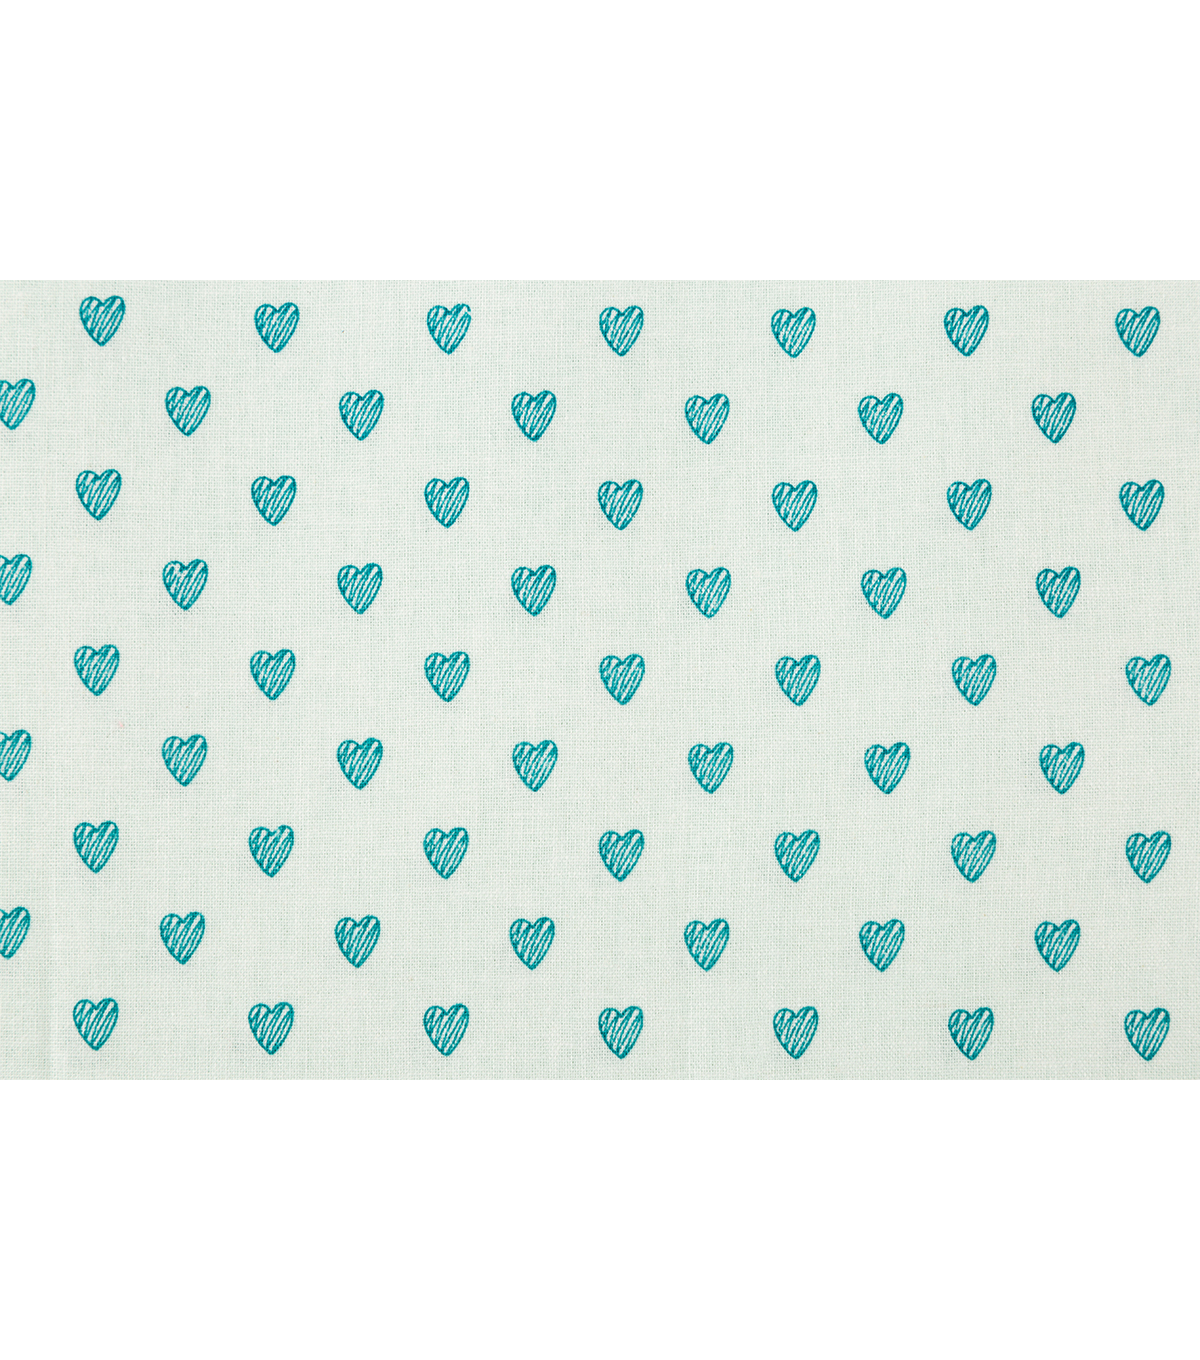 Cricut Designer Fabric Sampler-Love Story